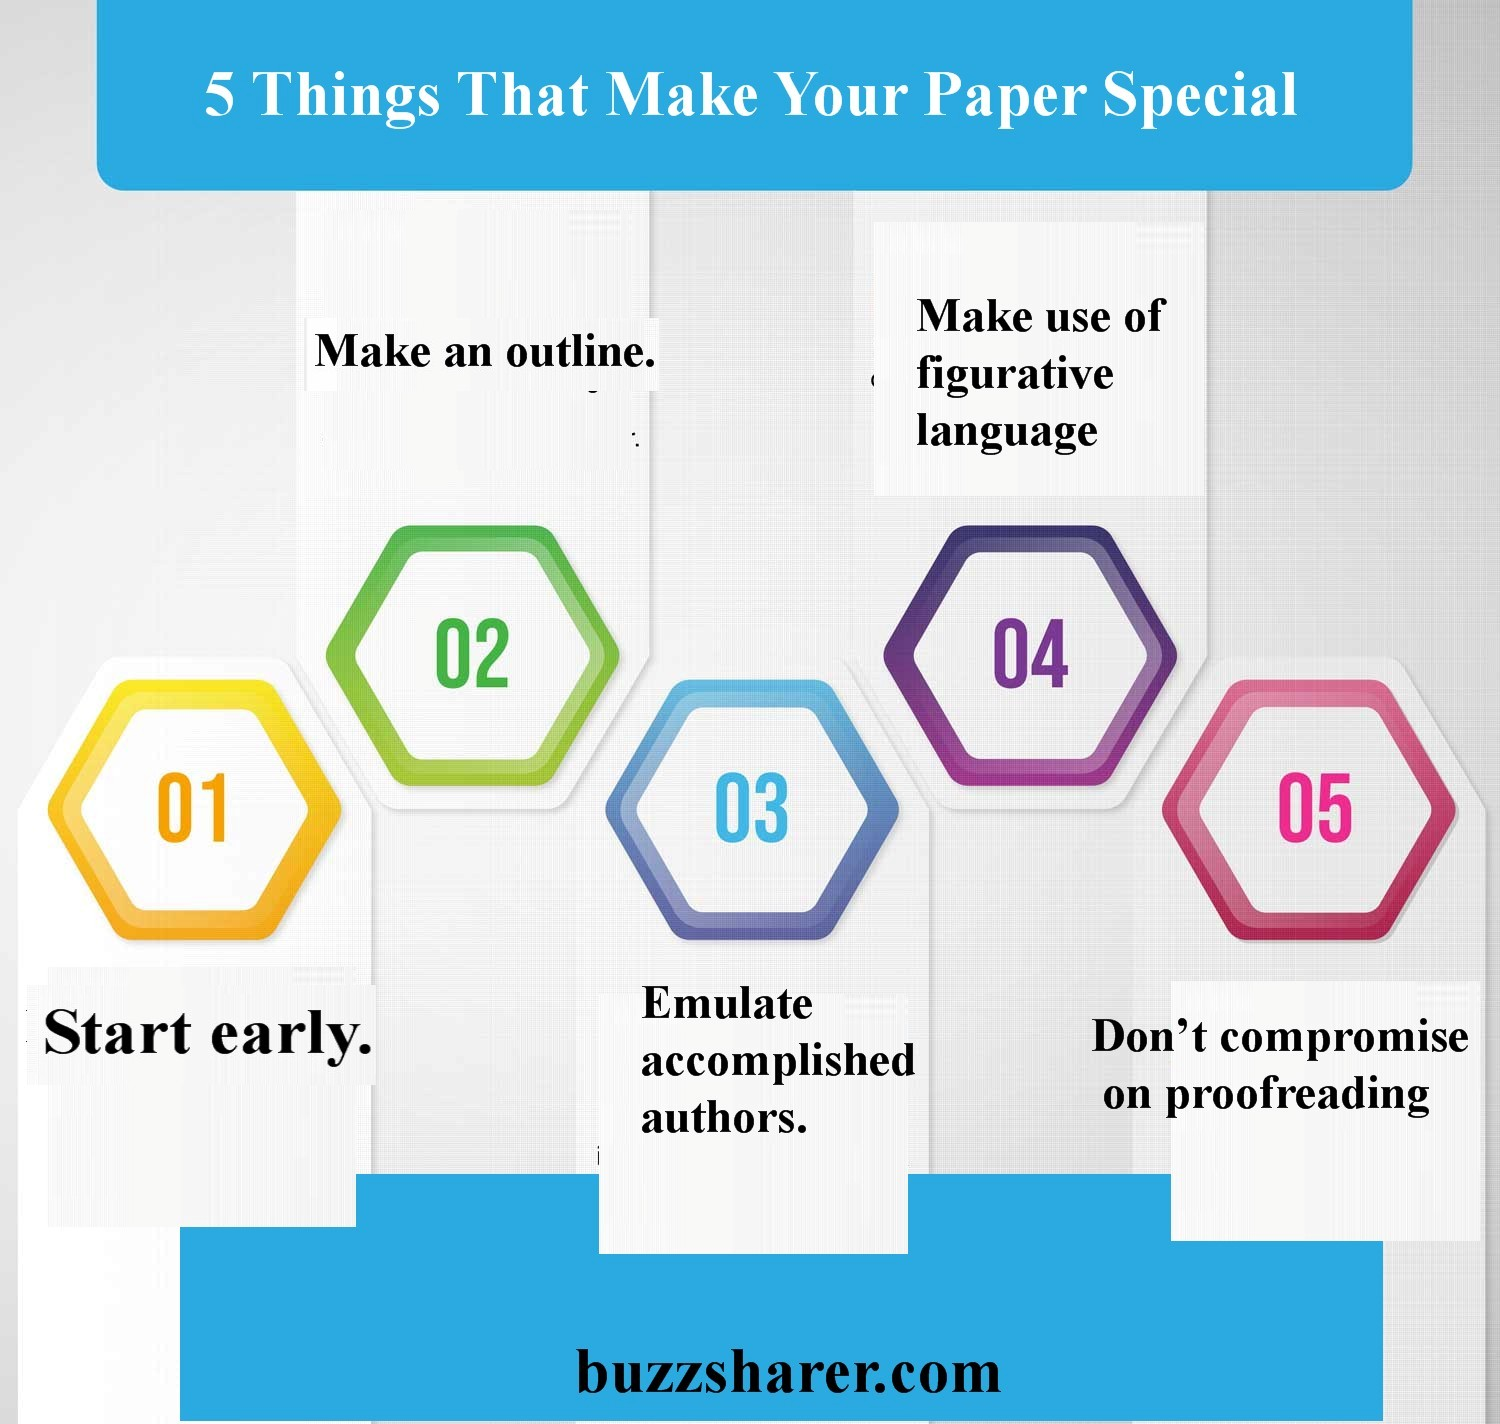 5 Things That Make Your Paper Special